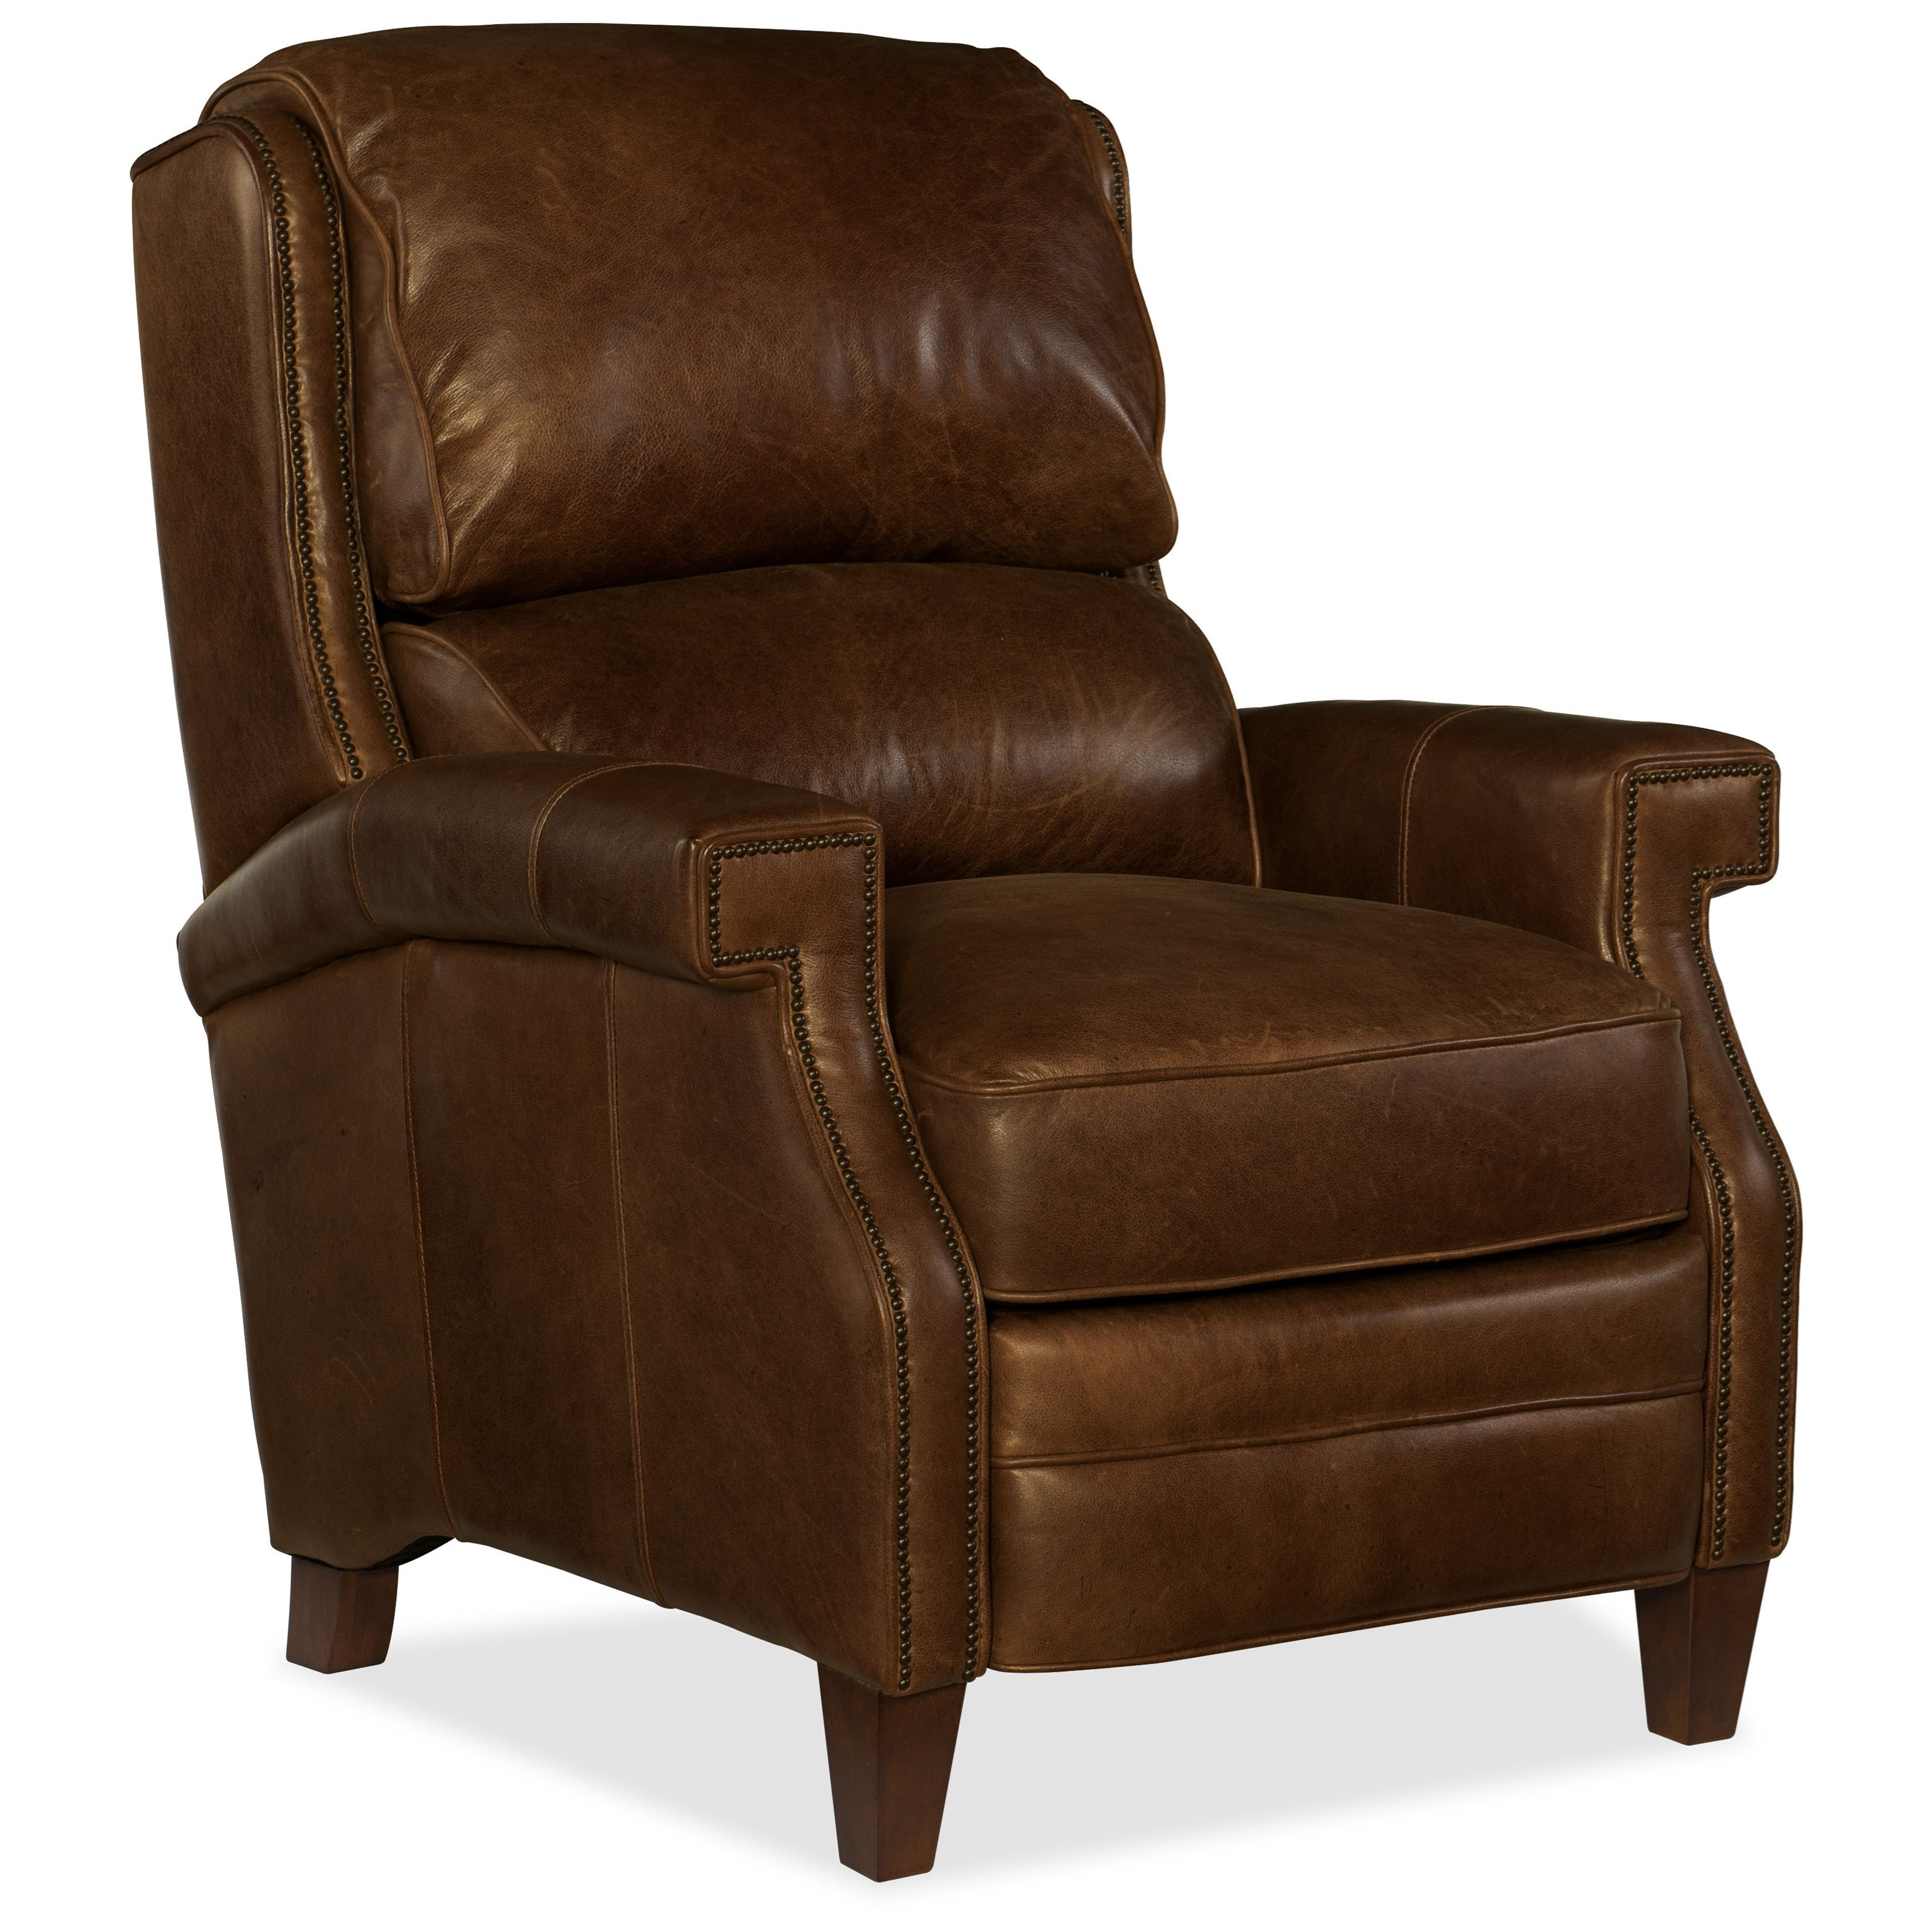 Leather Reclining Chairs Reclining Chairs Albert Transitional Leather Recliner By Hooker Furniture At Belfort Furniture